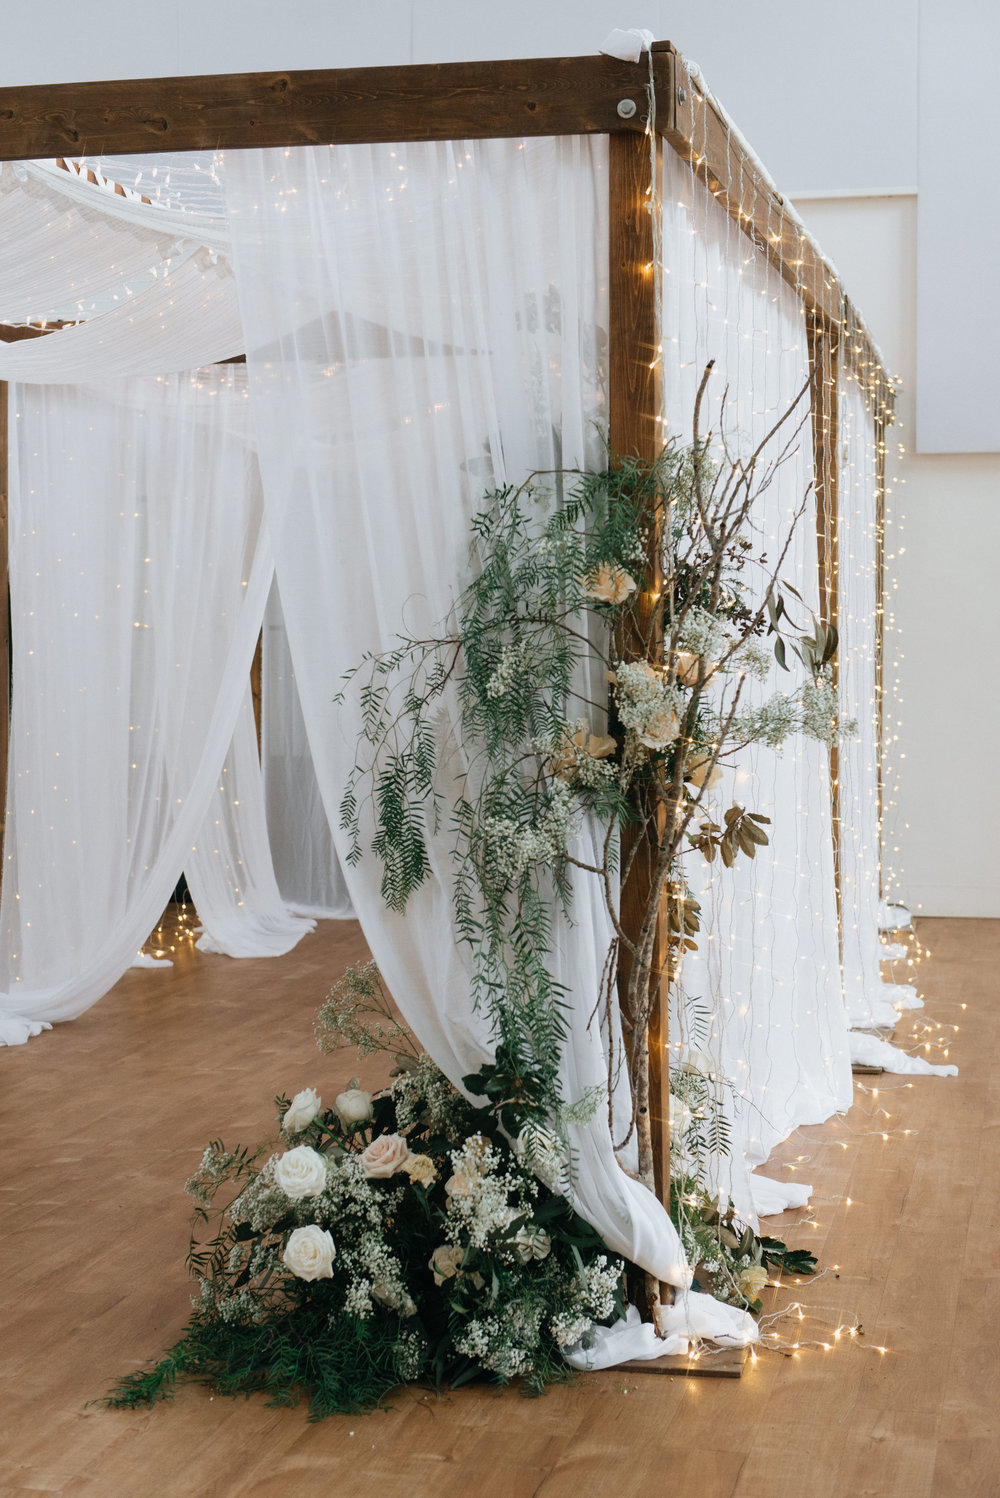 The gals transformed the entrance from our foyer into the main space with a canopy of twinkle lights and floral arrangements to die for.